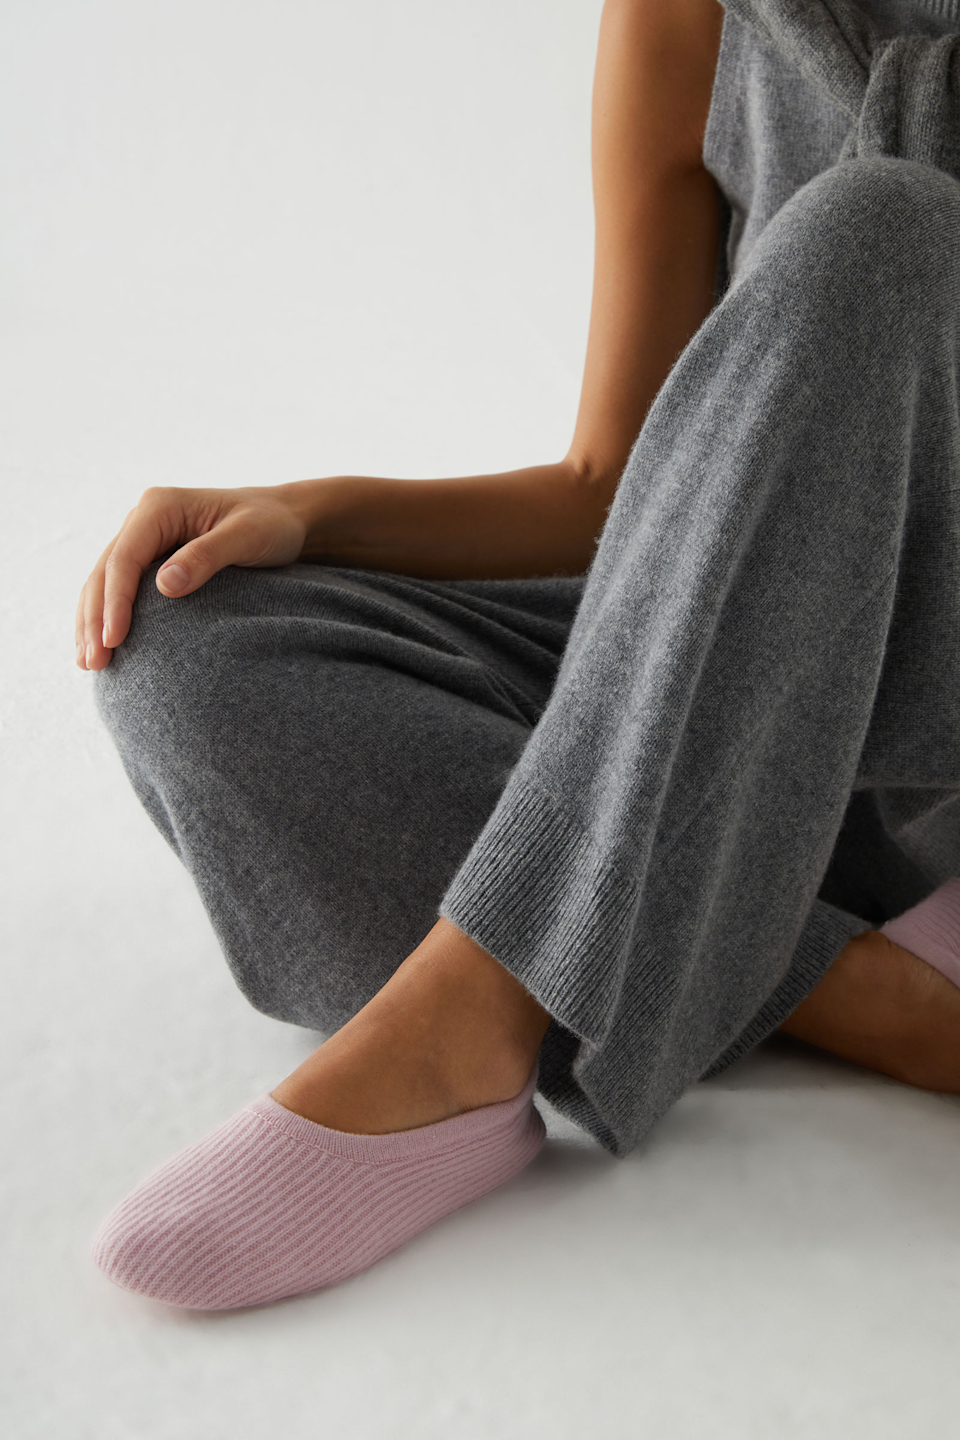 "For the friend who's perpetually freezing and won't let you turn your radiator off even when it's boiling hot.<br><br><strong>COS</strong> Ribbed Cashmere Slippers, $, available at <a href=""https://go.skimresources.com/?id=30283X879131&url=https%3A%2F%2Fwww.cosstores.com%2Fen_usd%2Fwomen%2Faccessories%2Fproduct.ribbed-cashmere-slippers-pink.0760298007.html"" rel=""nofollow noopener"" target=""_blank"" data-ylk=""slk:COS"" class=""link rapid-noclick-resp"">COS</a>"